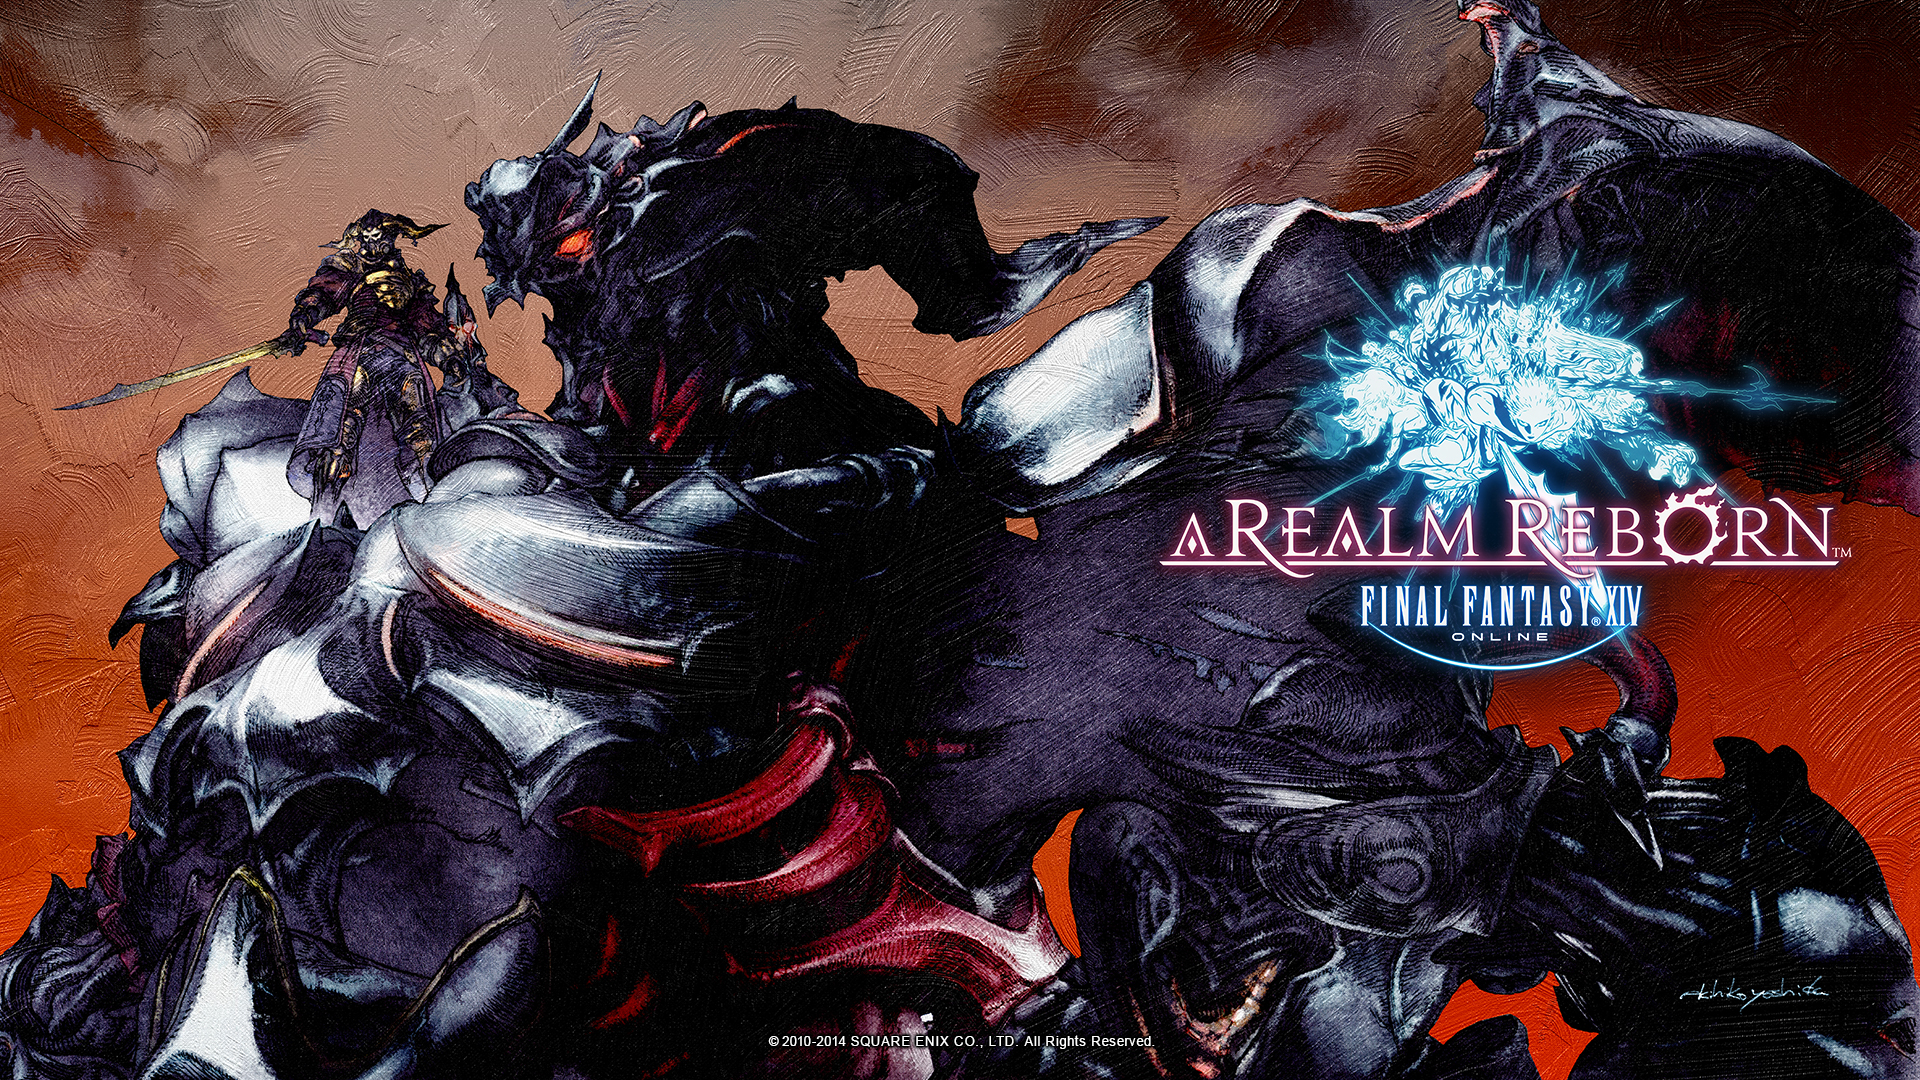 ... Fantasy XIV: A Realm Reborn Wallpapers Featuring Gaius and Bahamut